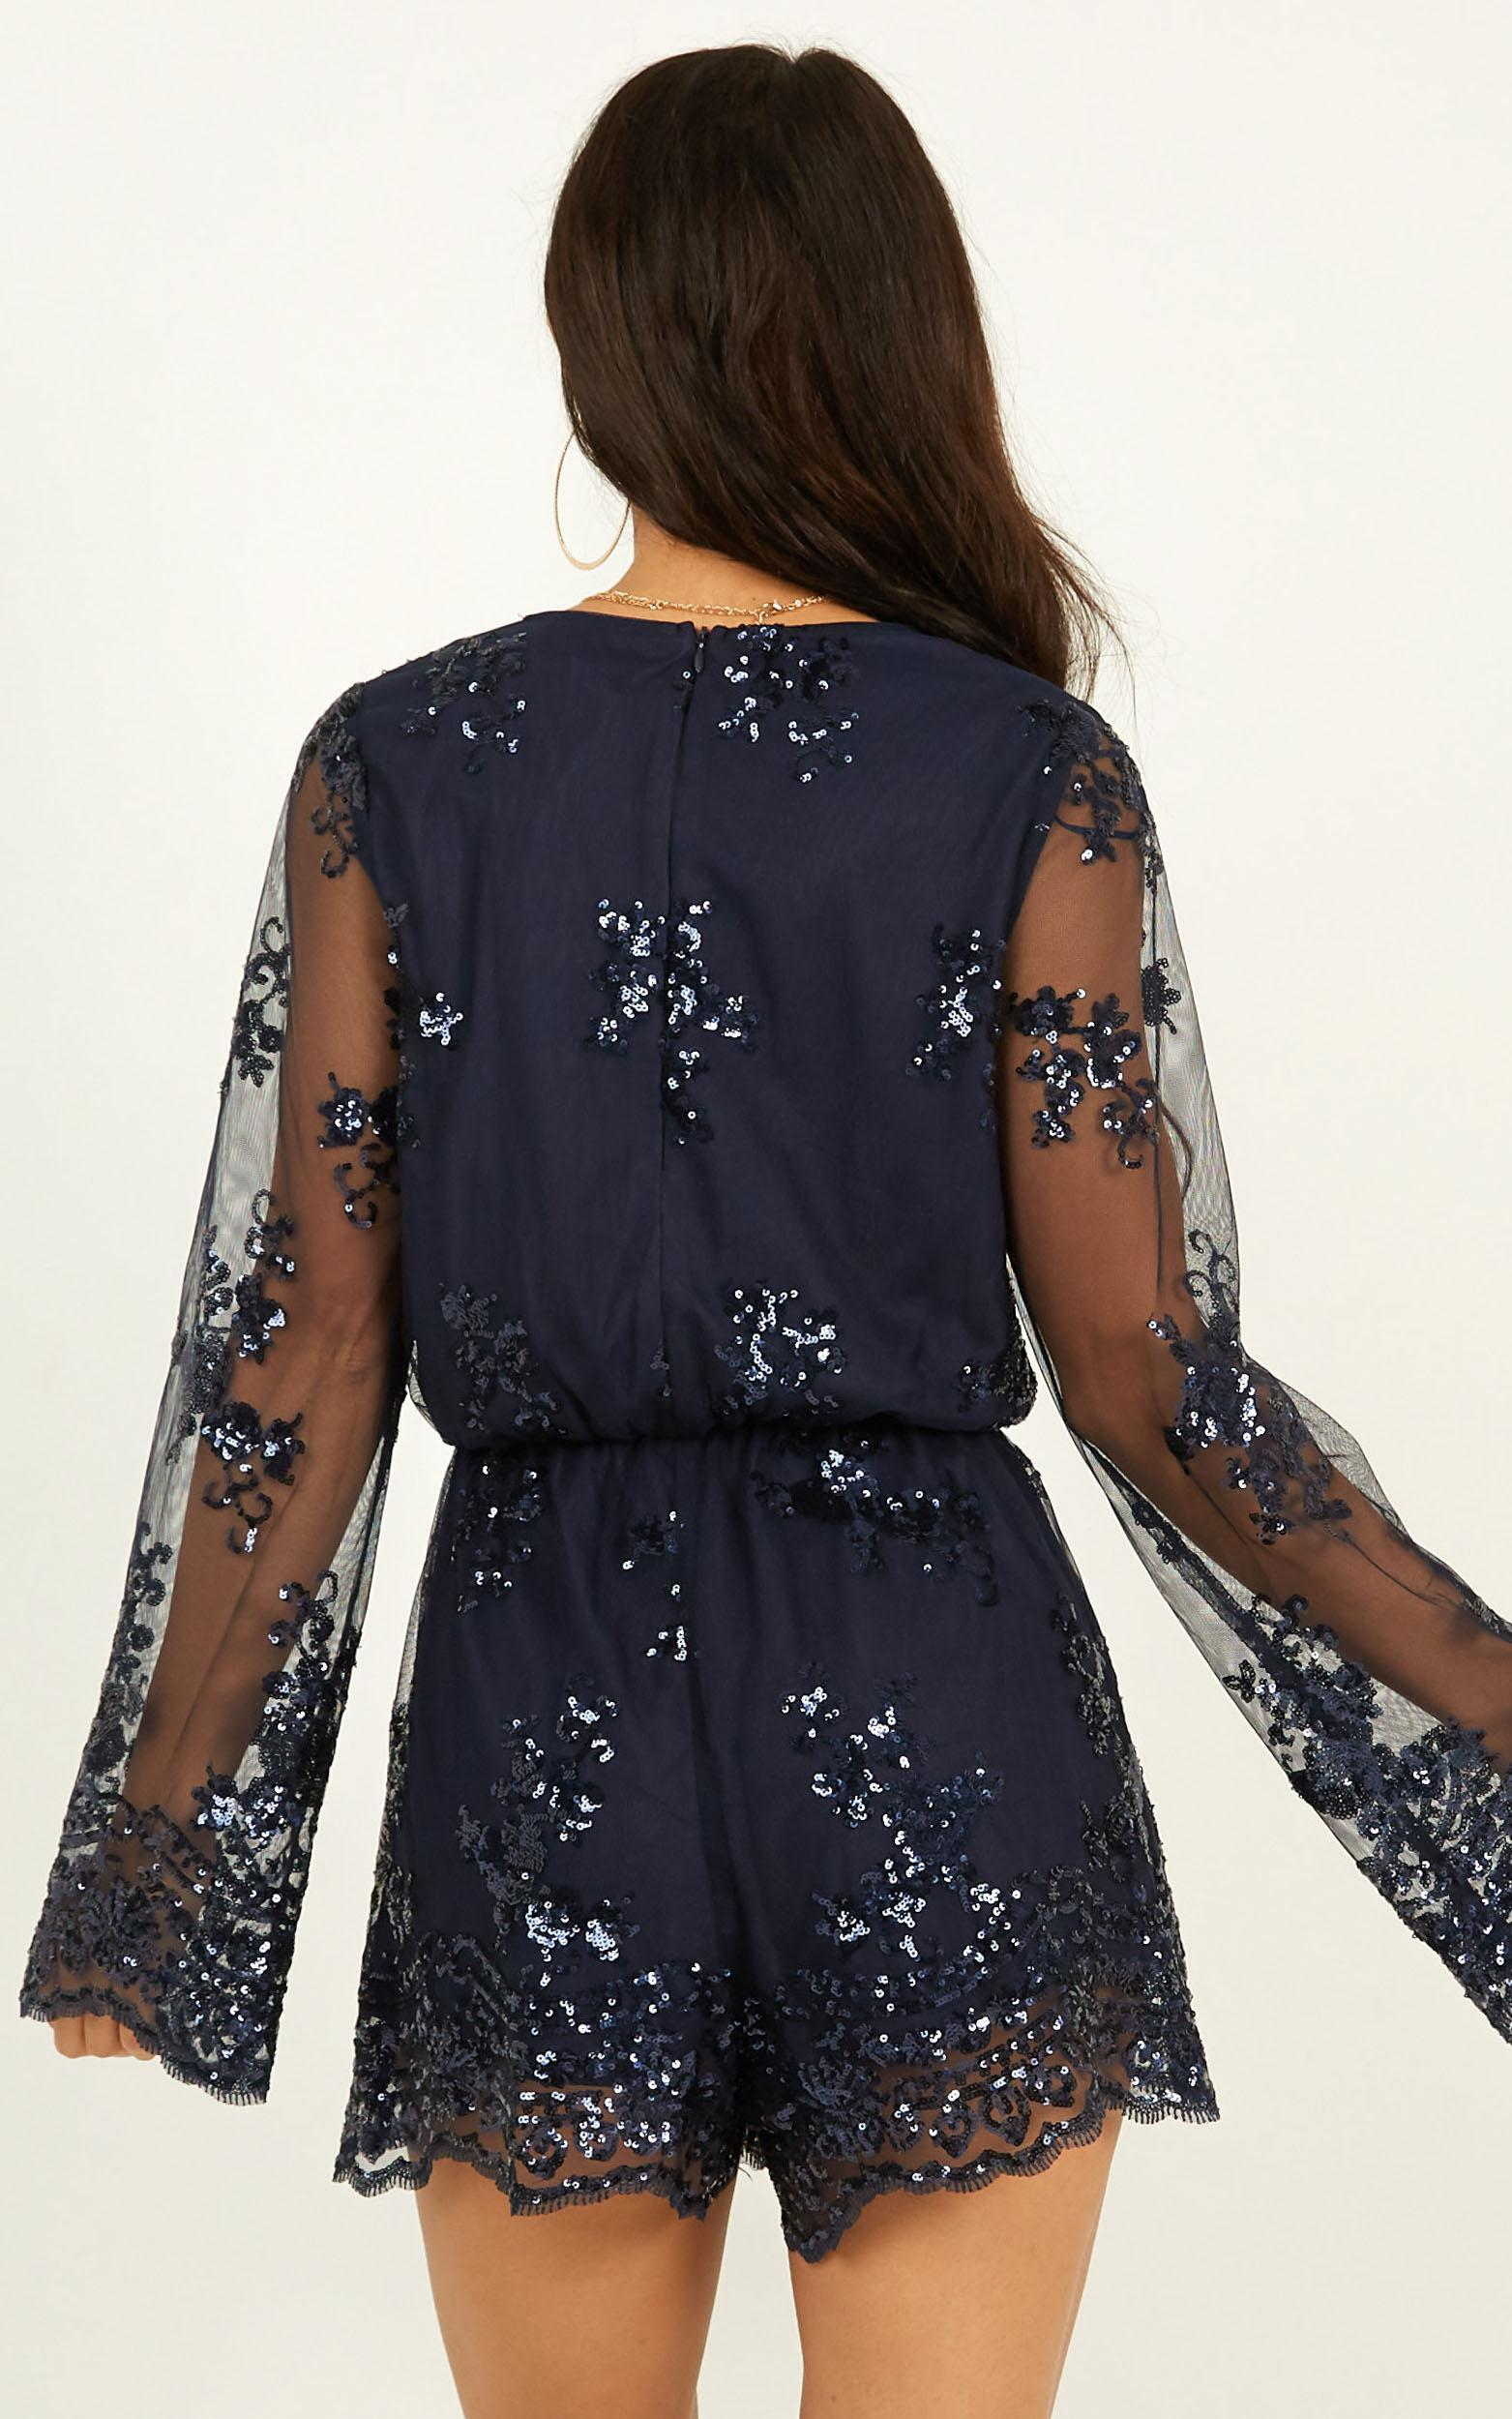 On Call Playsuit in navy sequin - 20 (XXXXL), Navy, hi-res image number null